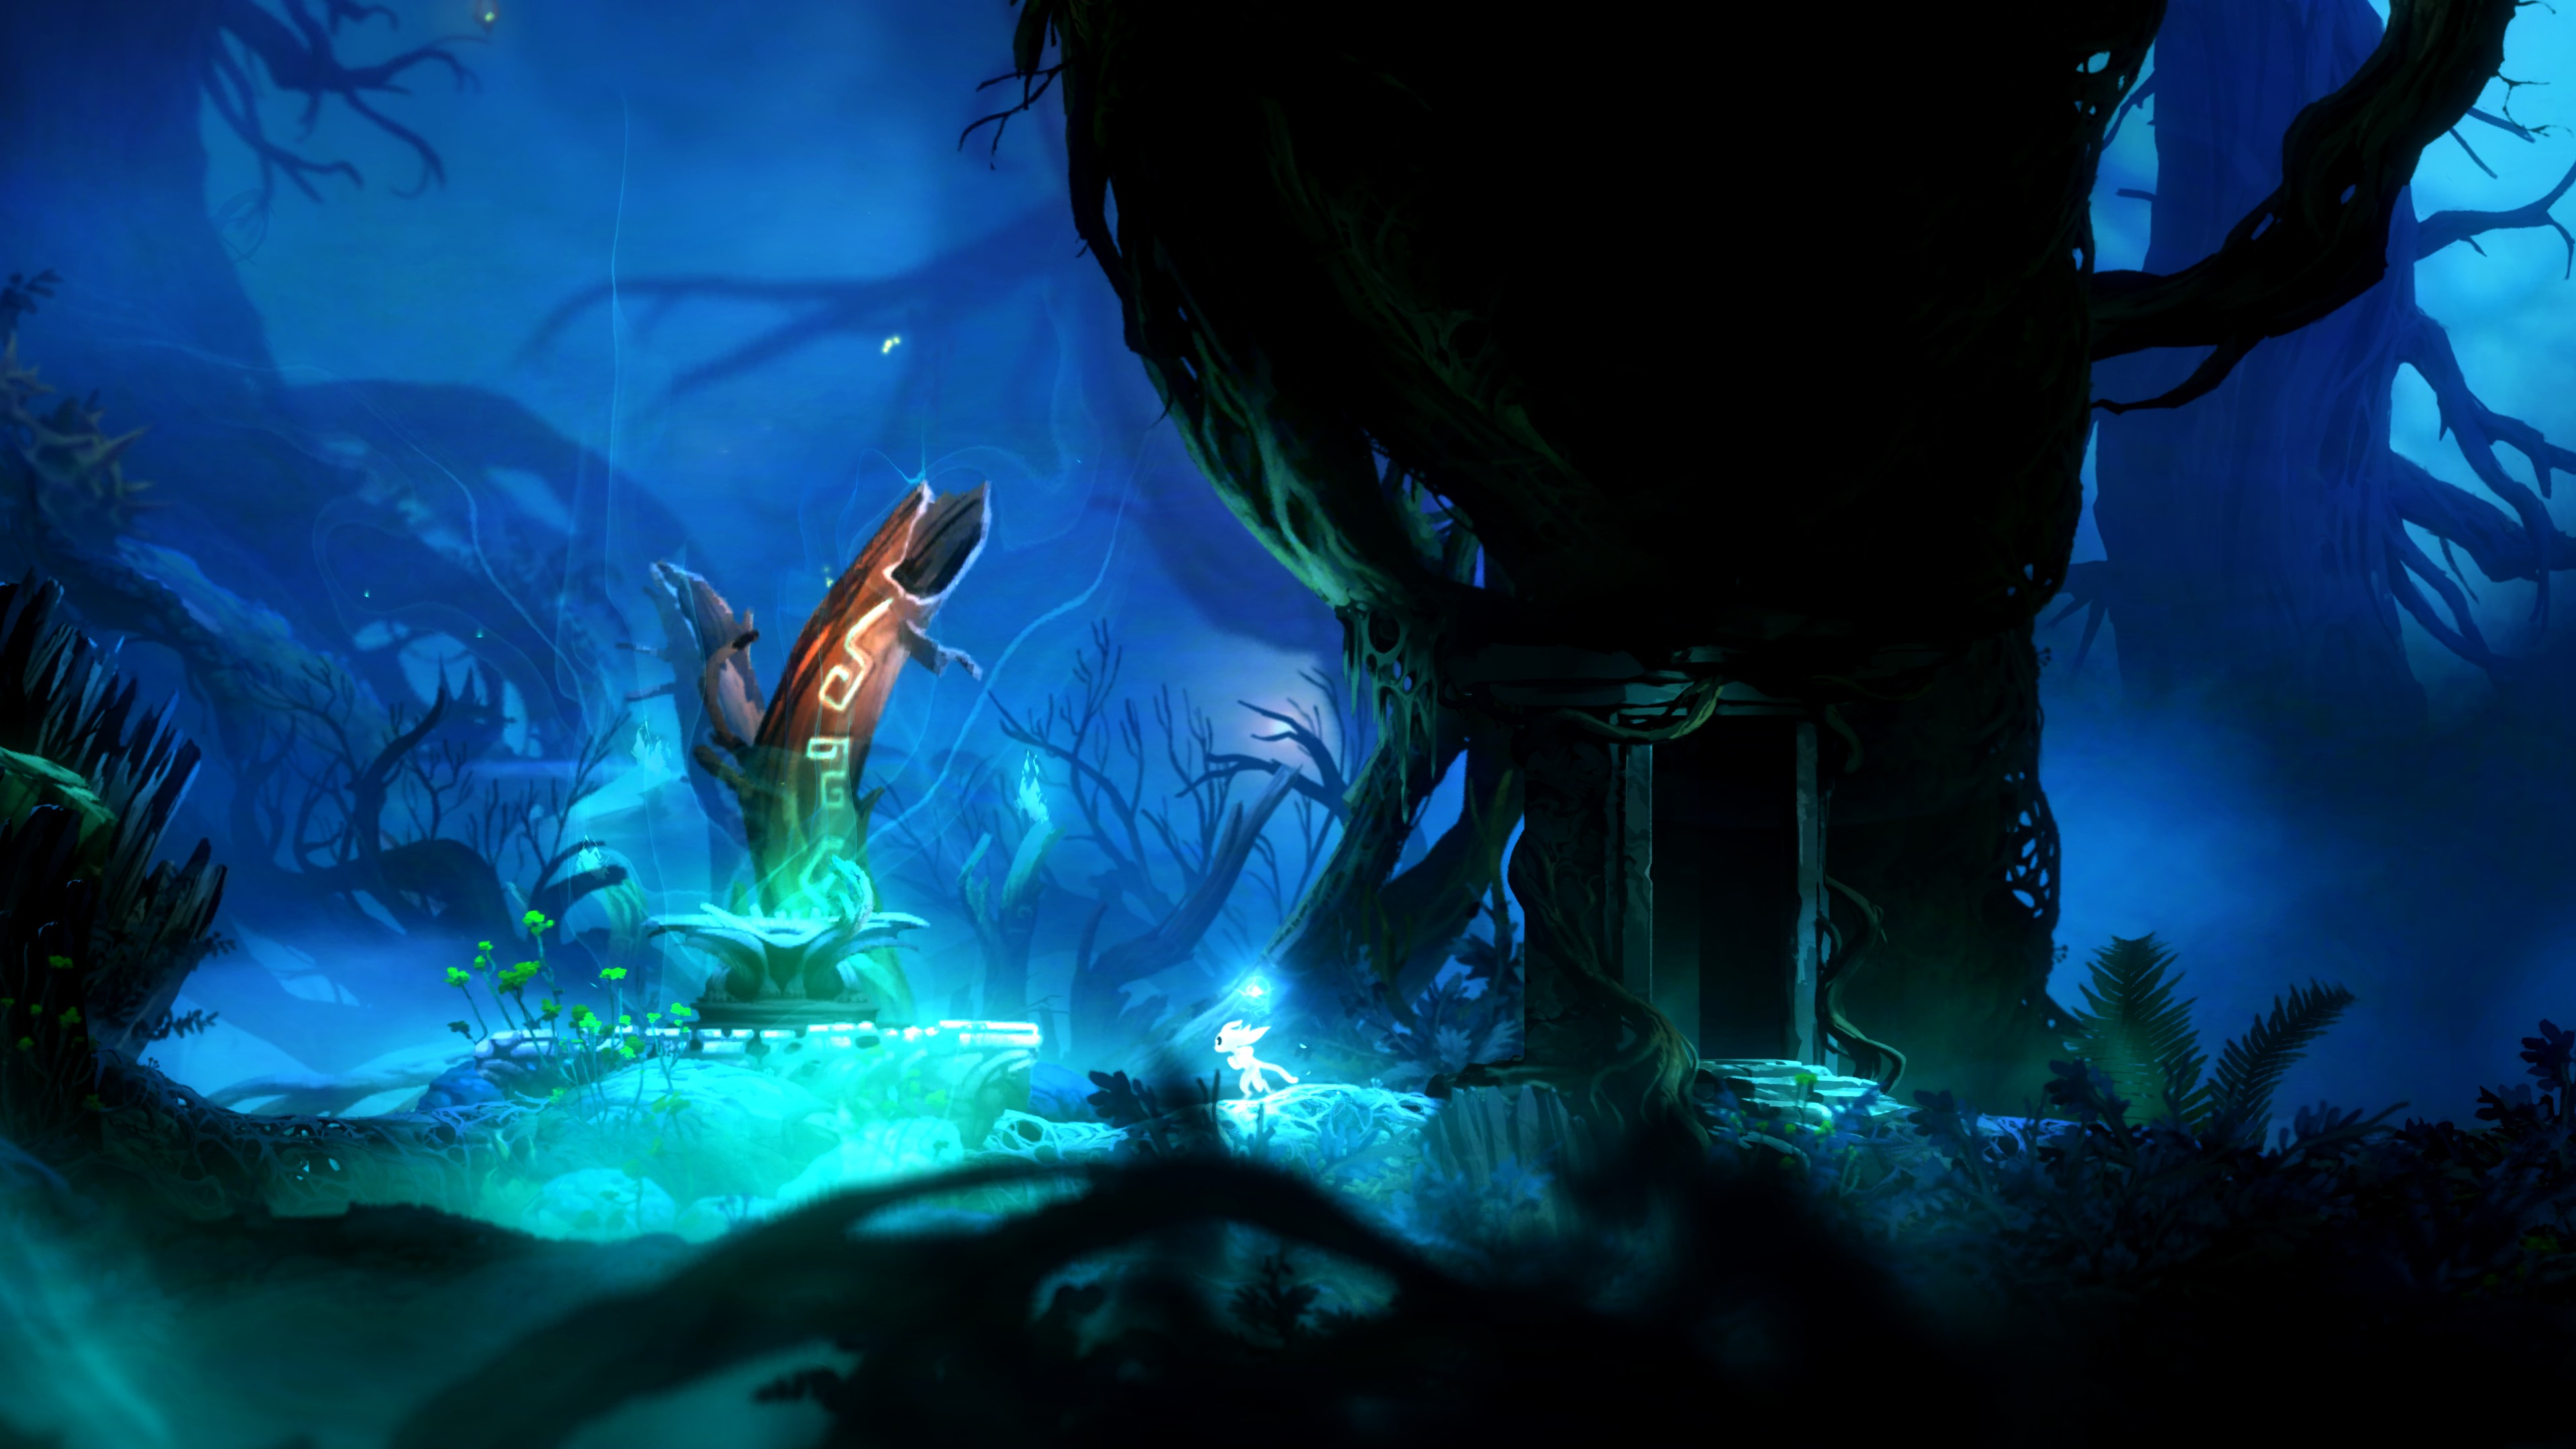 Ori and the Blind Forest Backgrounds 4K Download